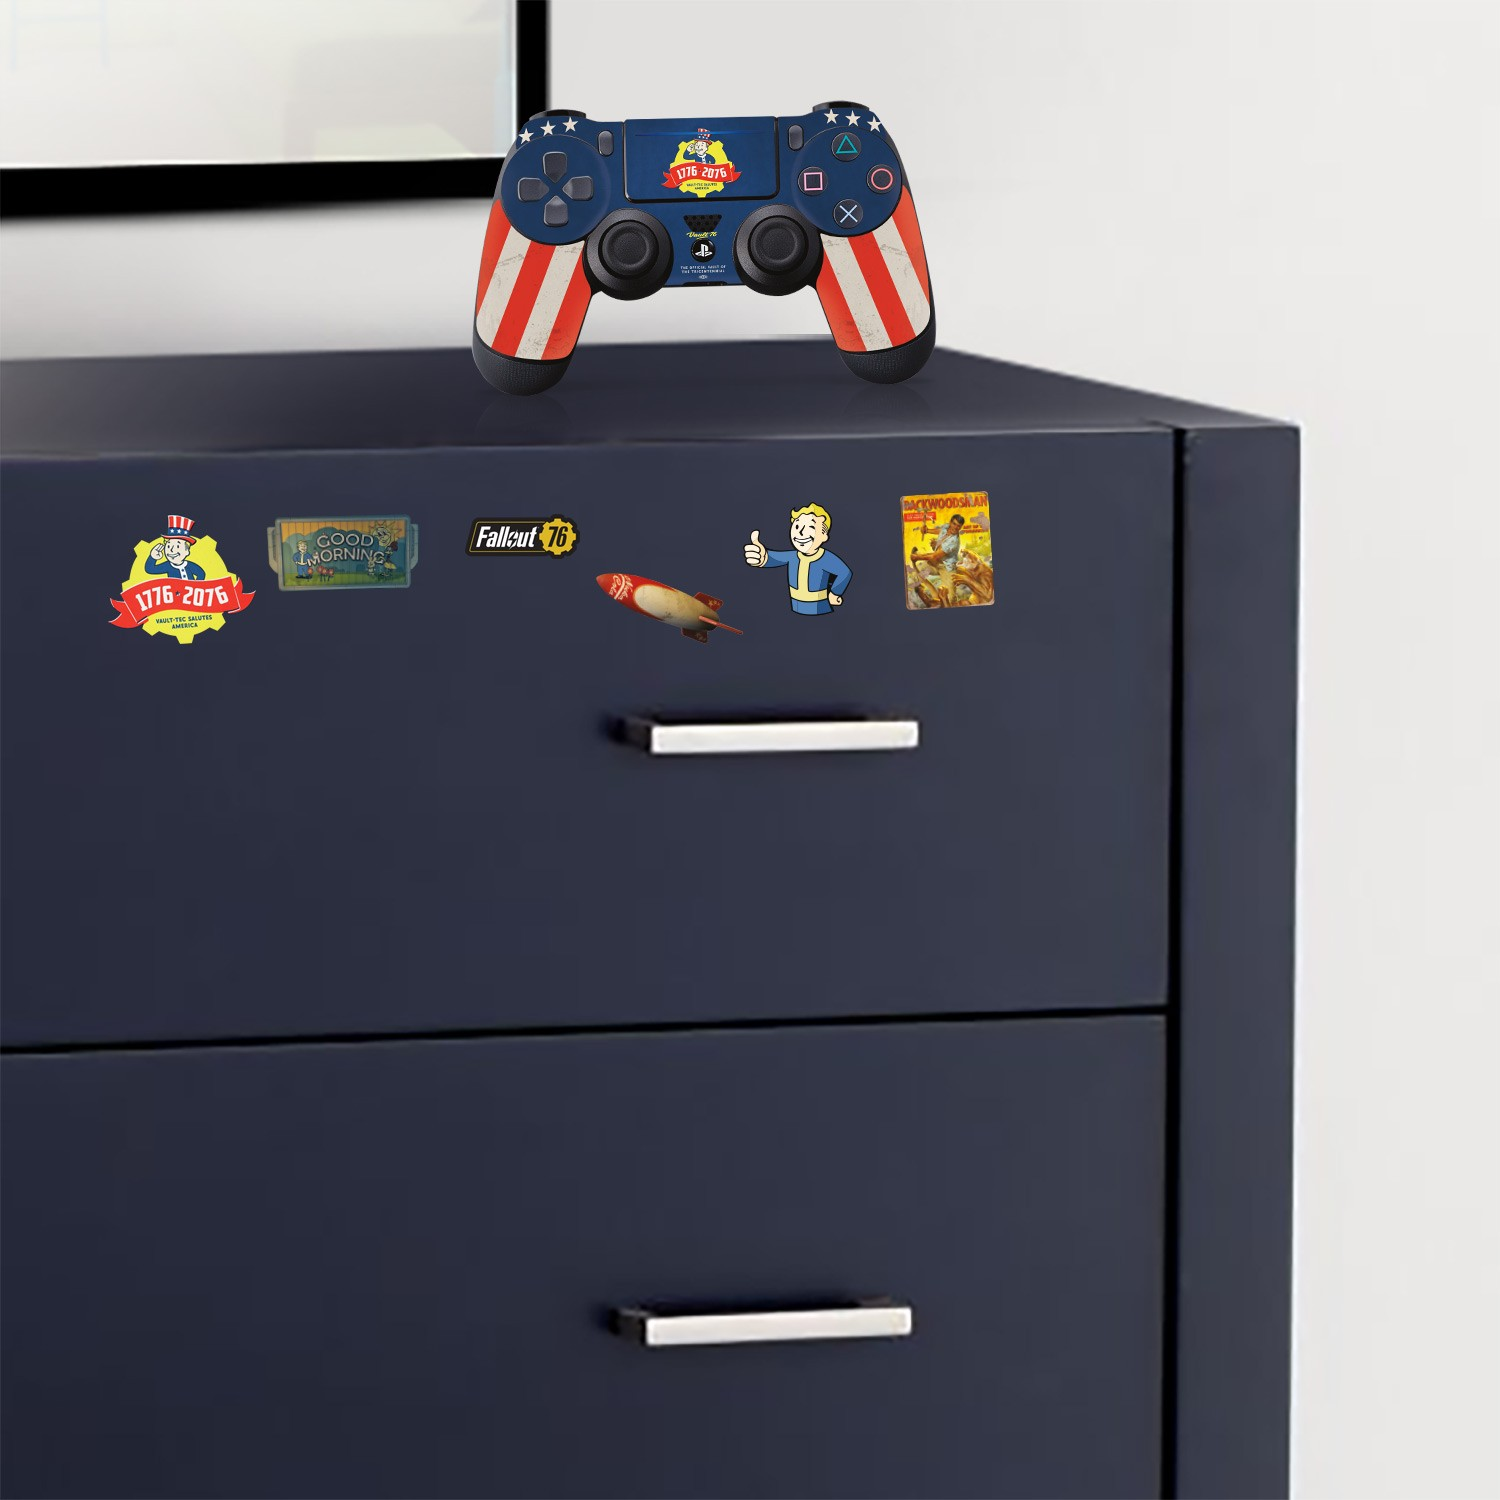 "Officially Licensed PlayStation 4 Fallout 76 DUALSHOCK 4 Wireless Controller Skin and Tech Decals ""Tricentennial"""